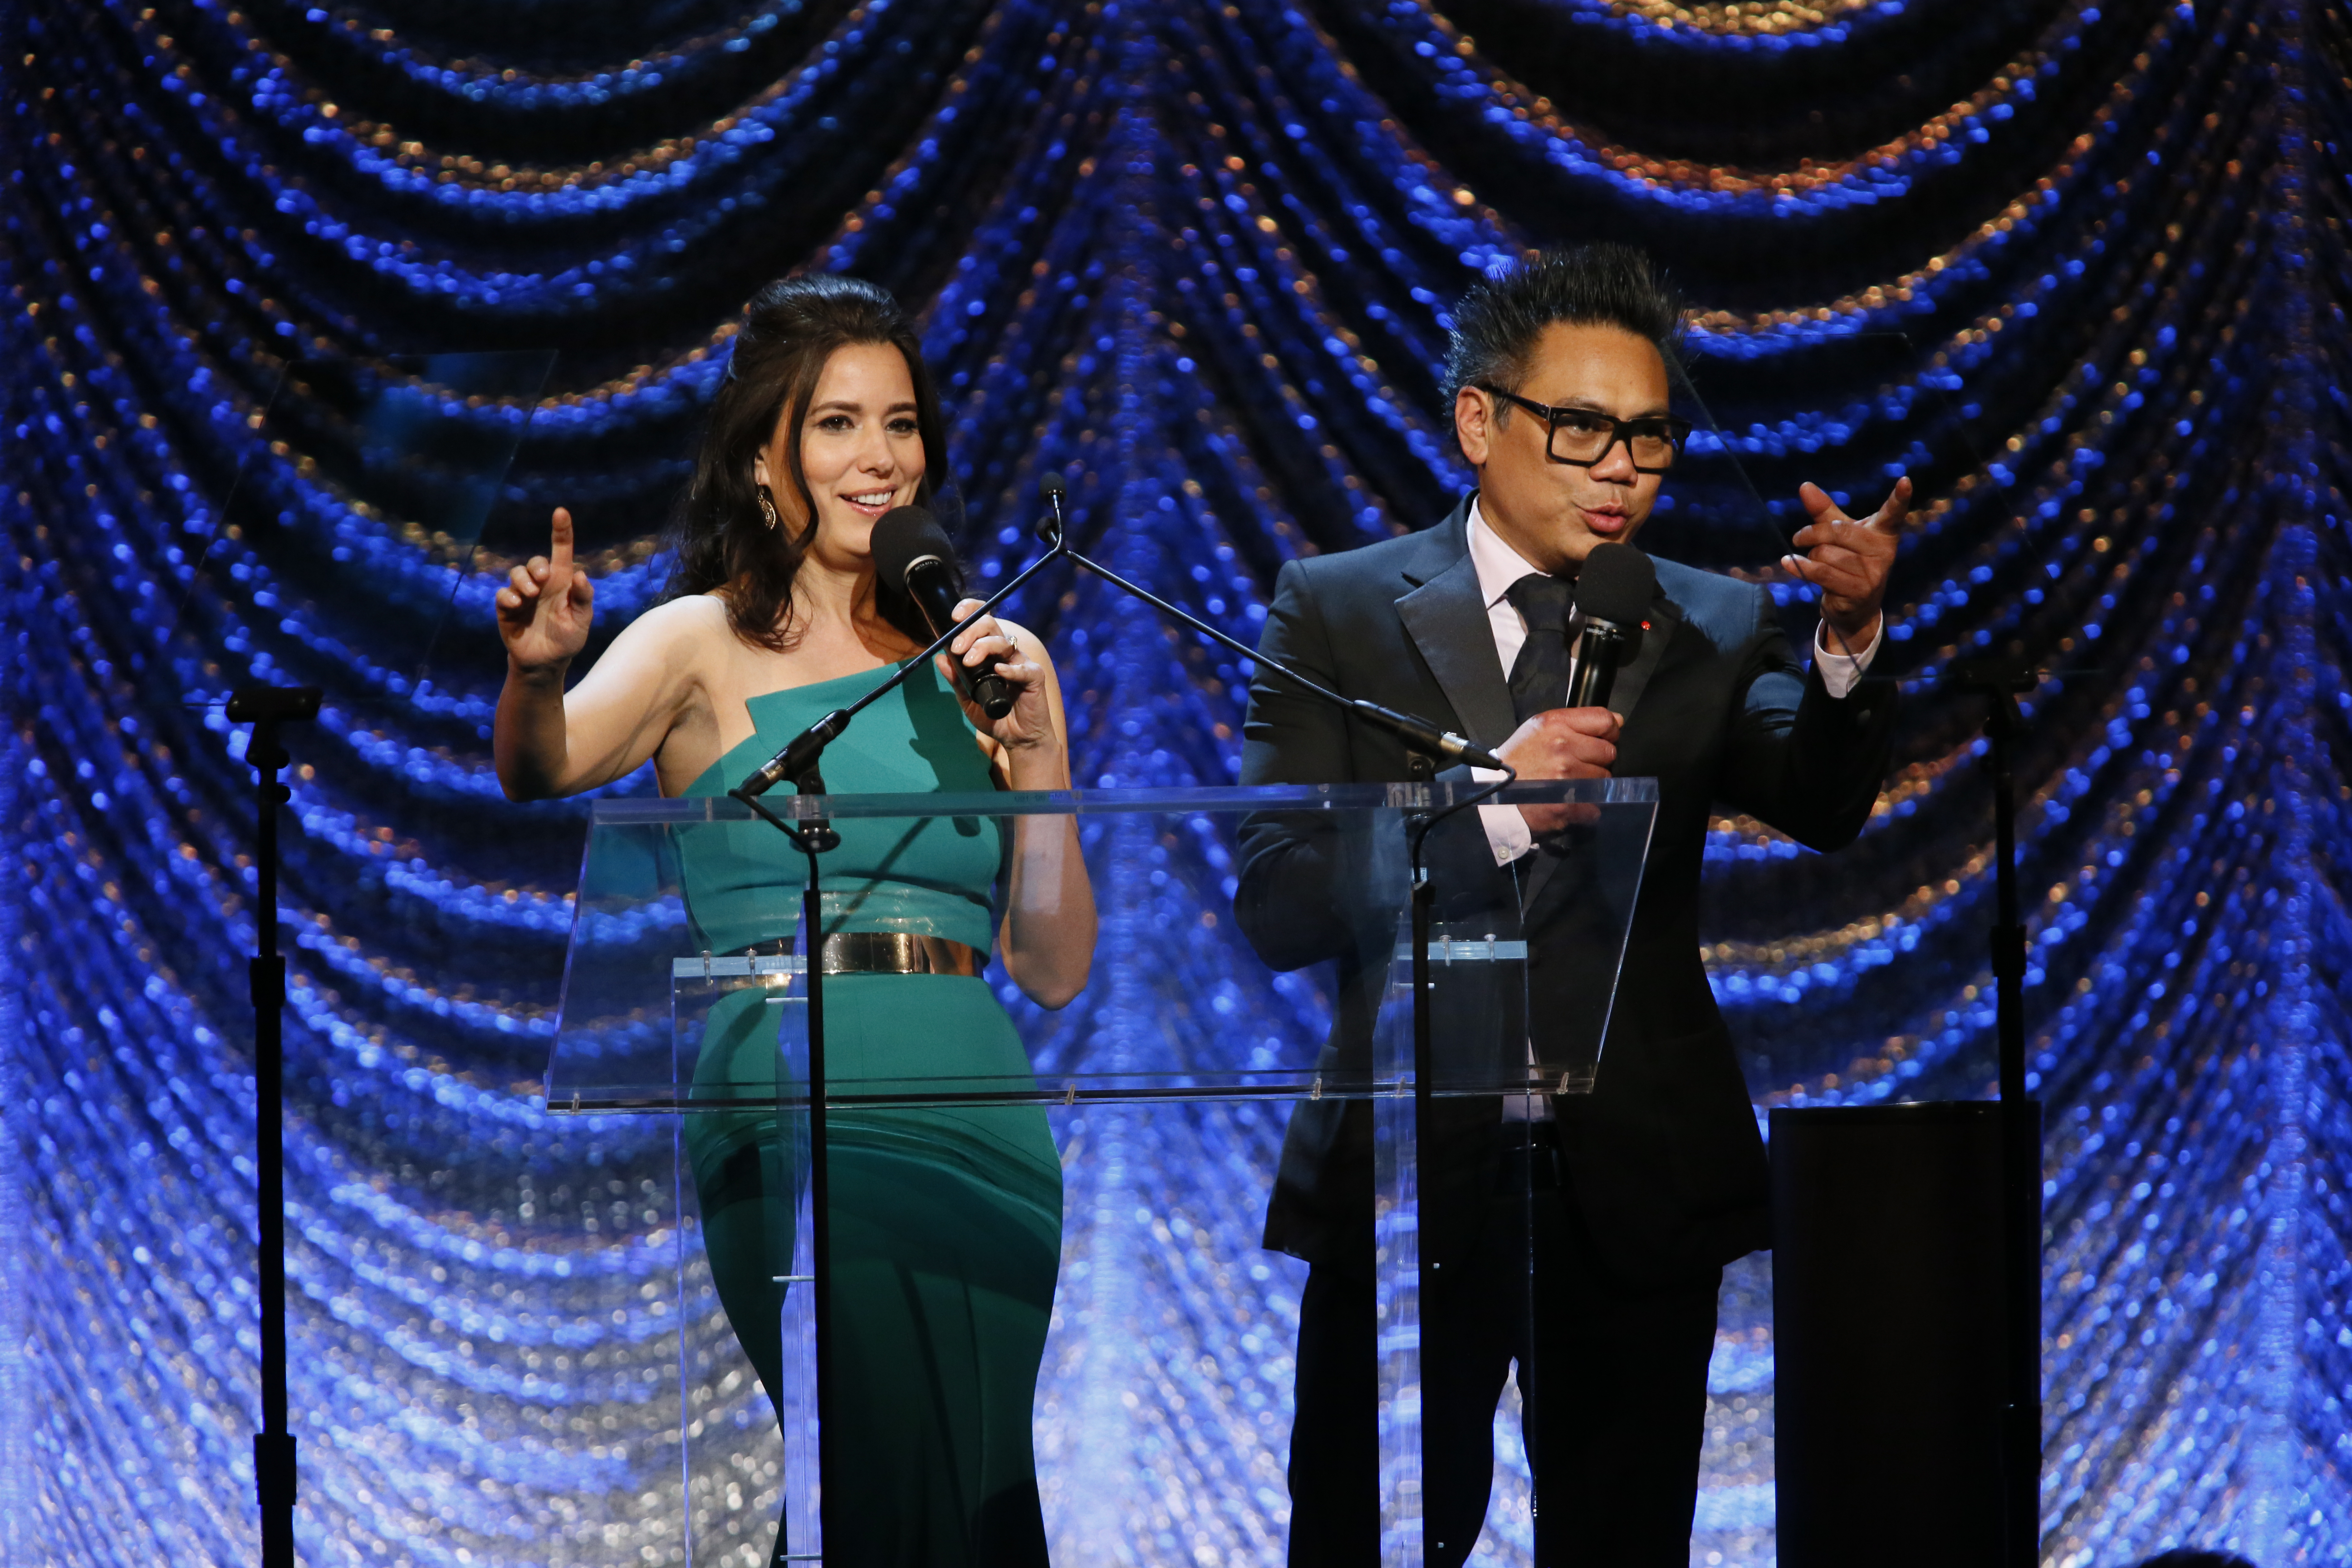 ASC Awards co-hosts Delphine Figueras and Matthew Libatique, ASC close the show with a toast.